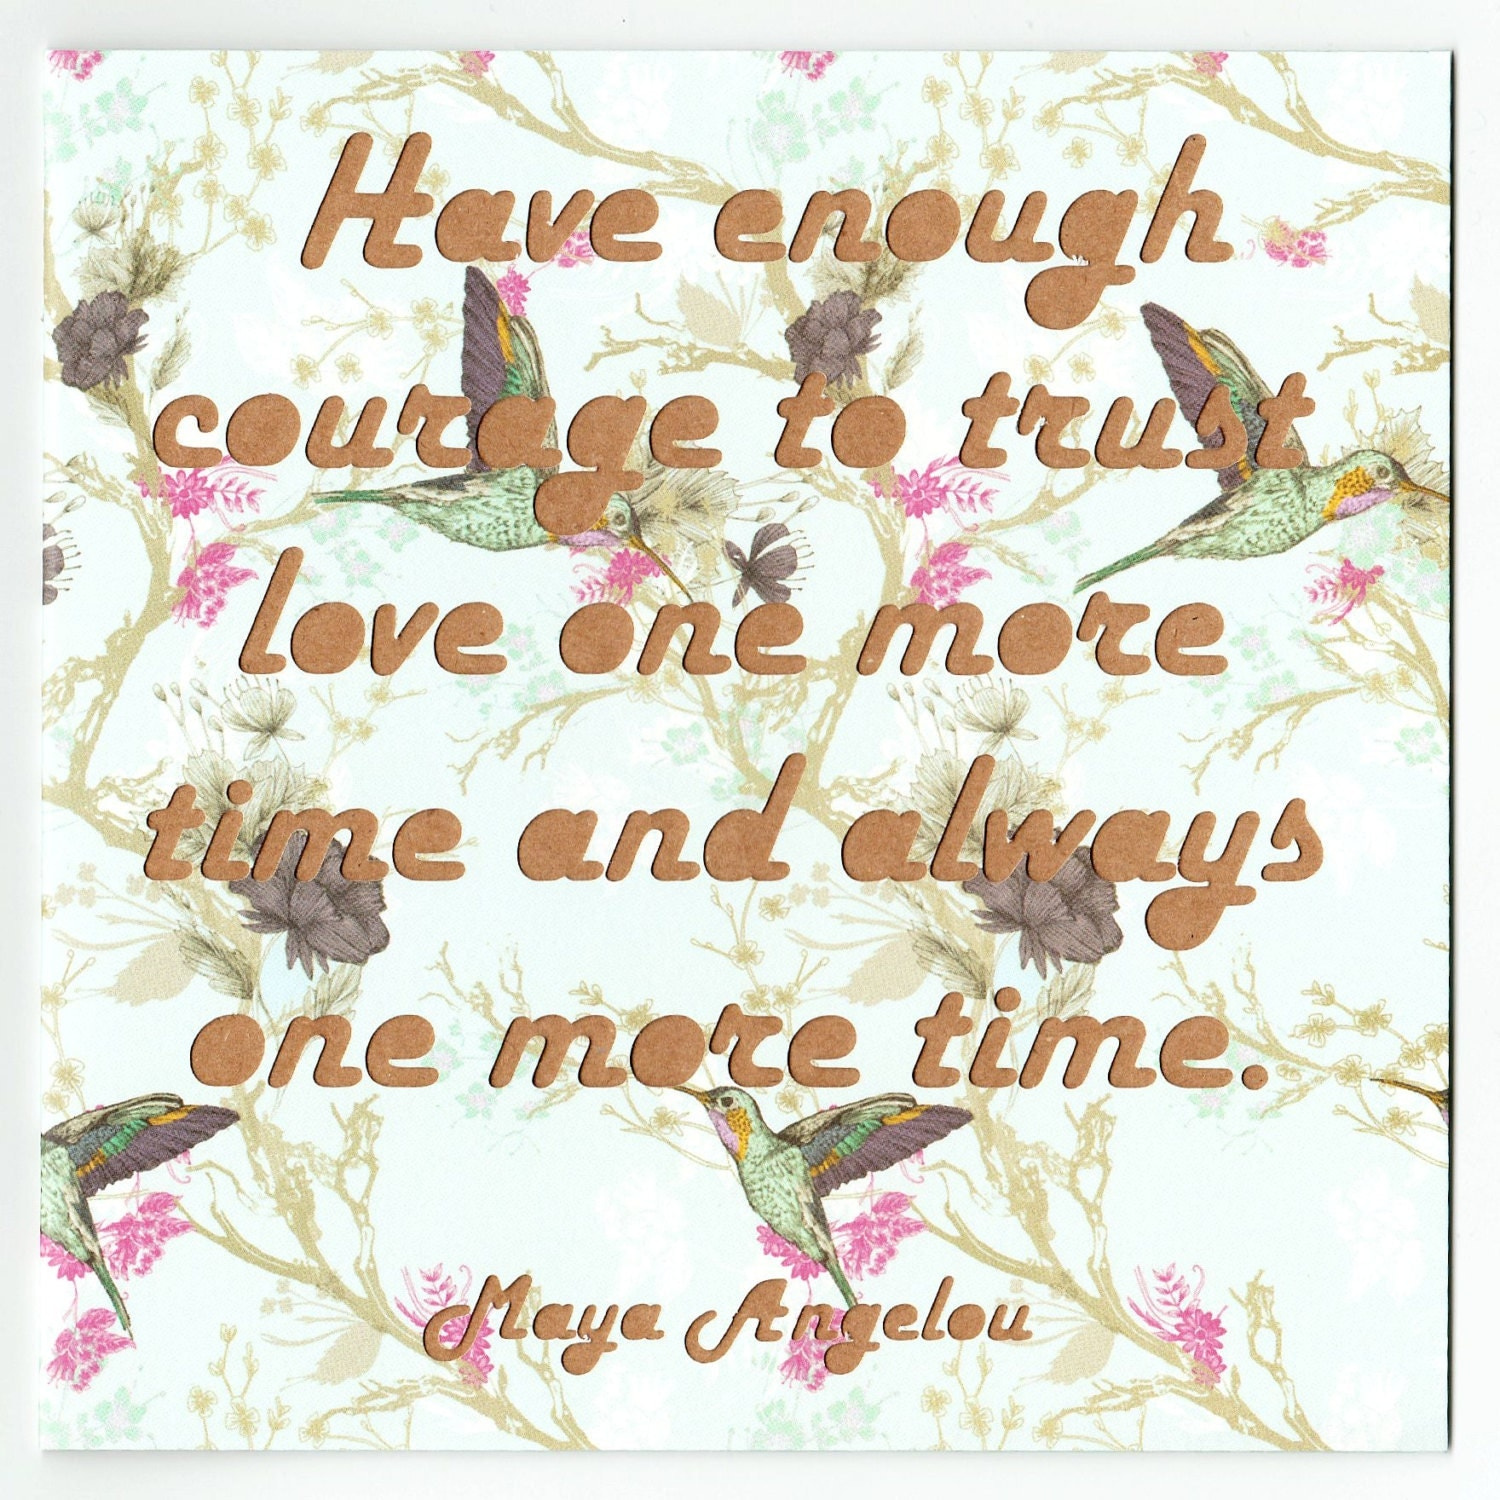 Maya angelou quotation greeting card supportive card have maya angelou quotation greeting card supportive card have enough courage to trust love one more time and always one more time kristyandbryce Images